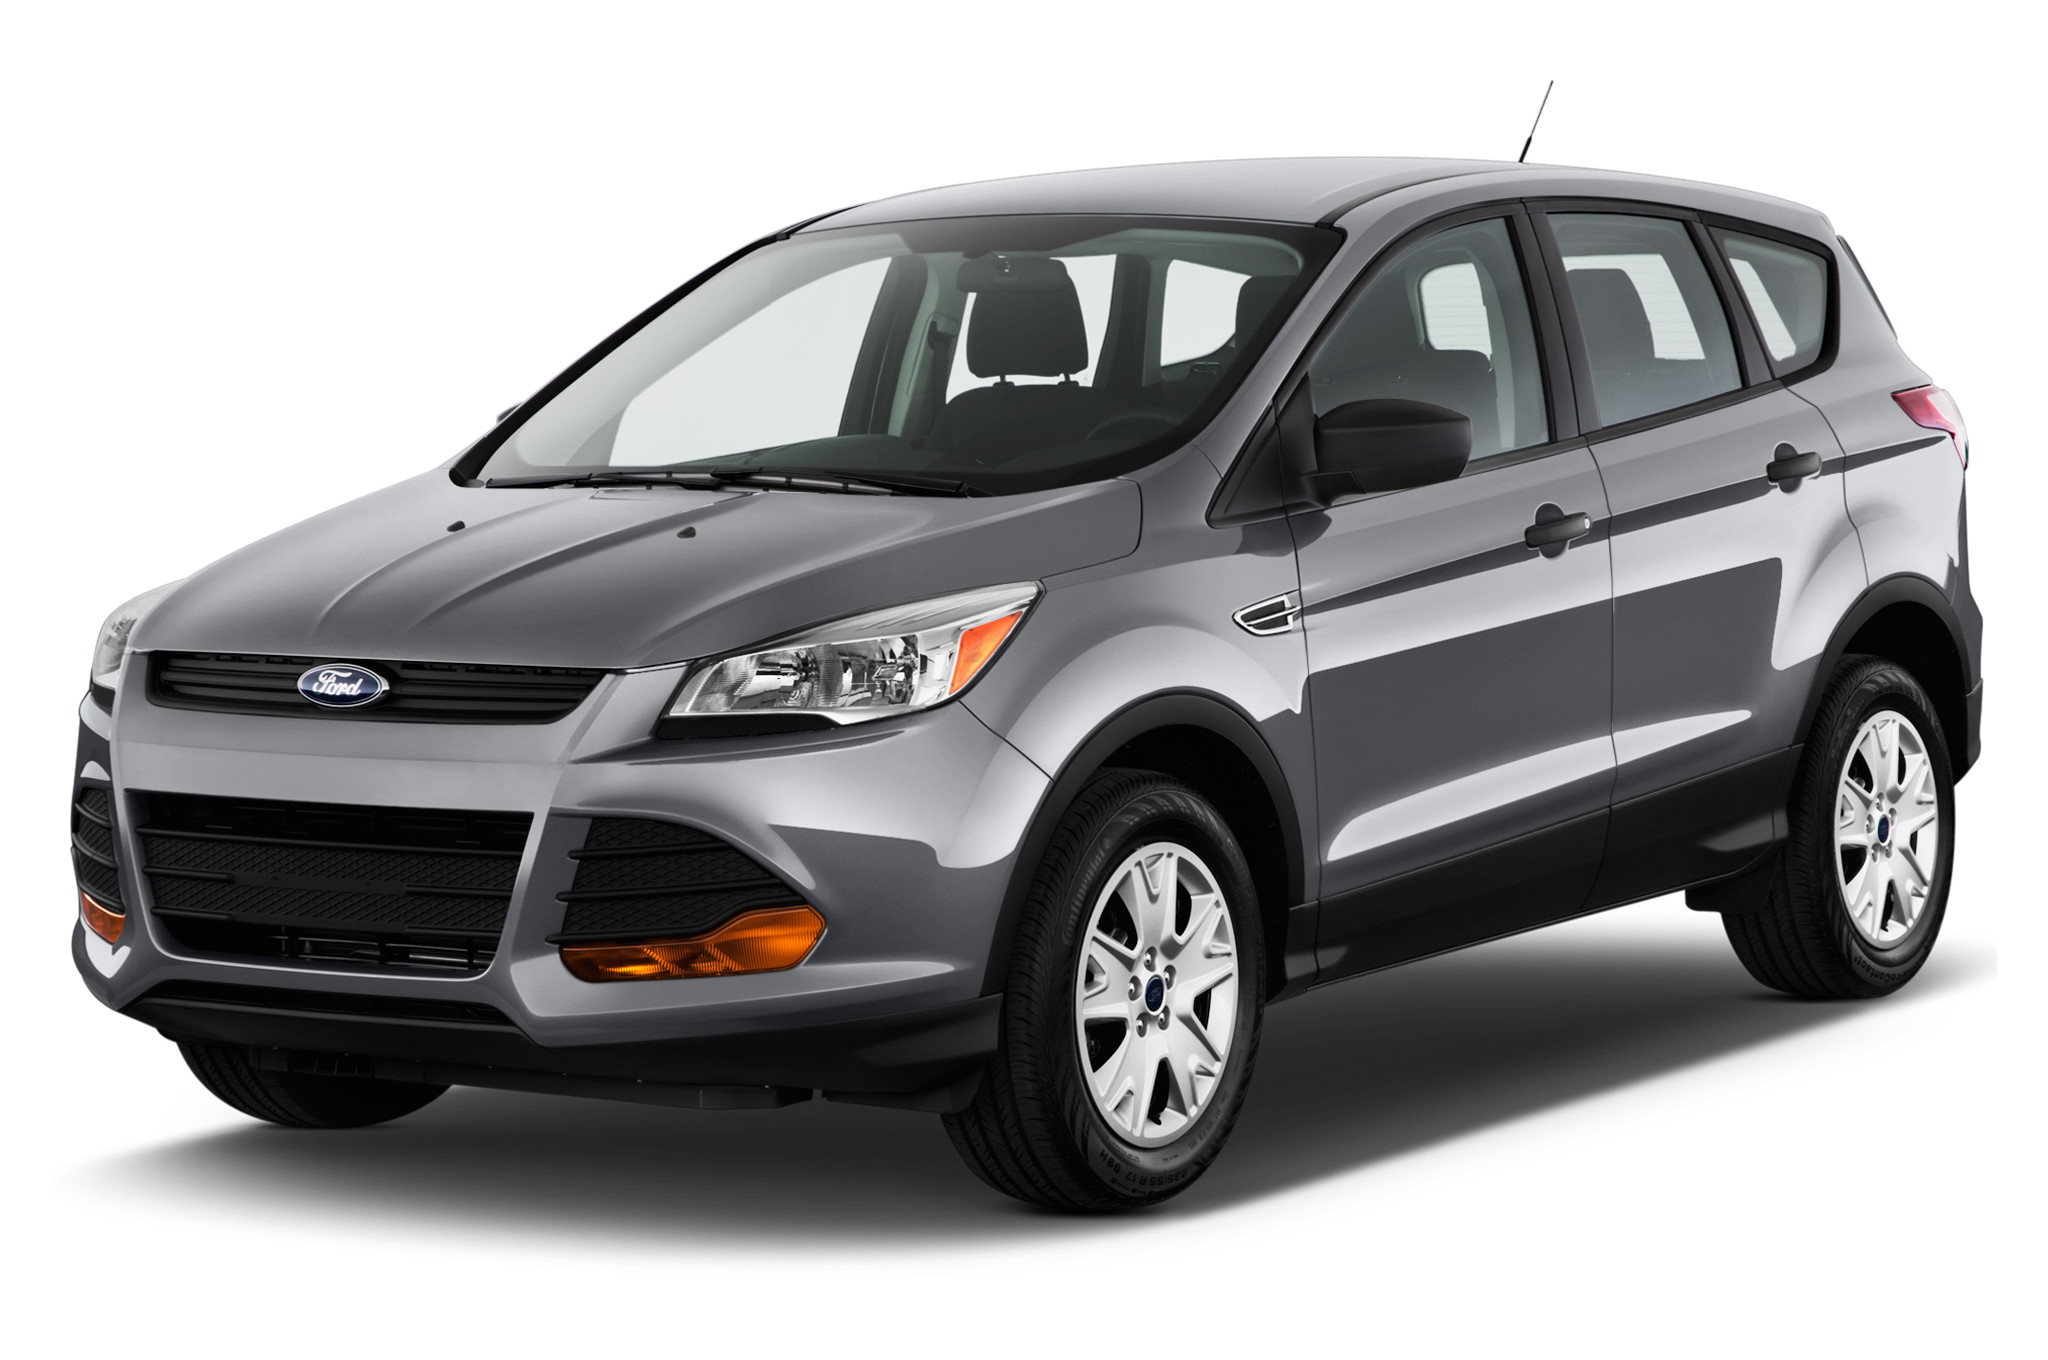 2016 ford png. Escape reviews and